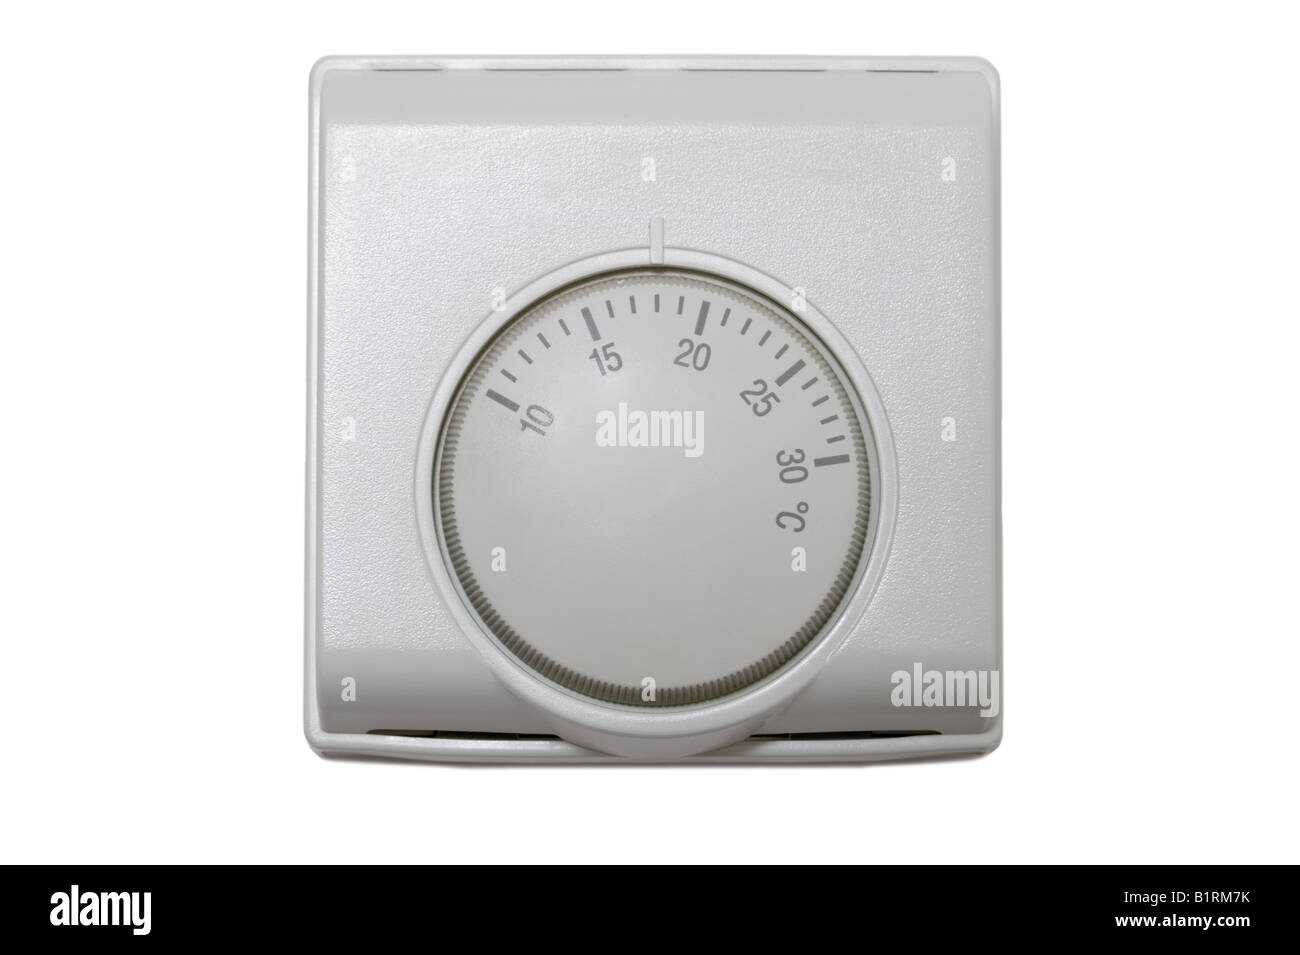 Central heating thermostat control isolated on a white background - Stock Image